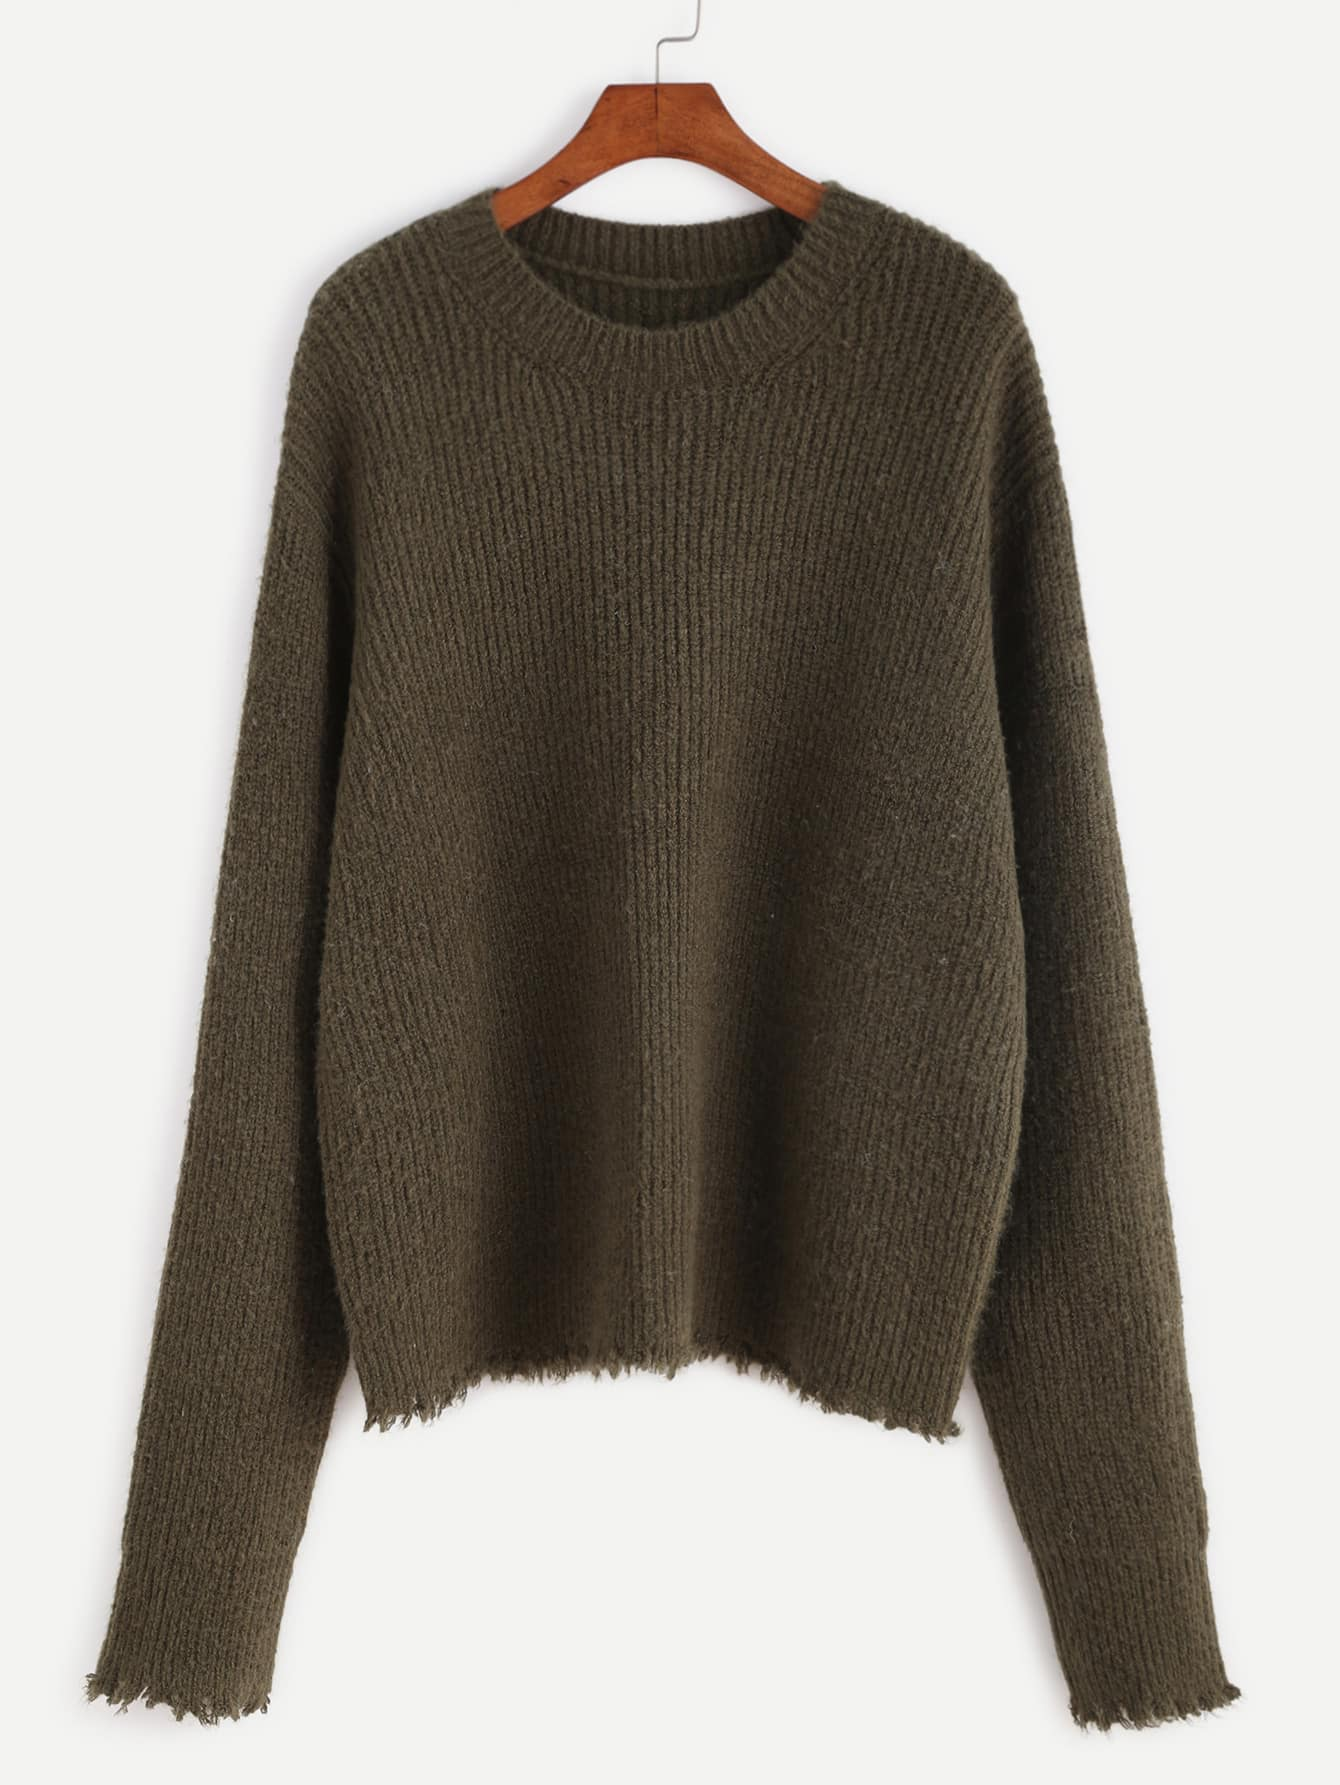 Olive Green Ribbed Knit Frayed Sweater sweater161020450